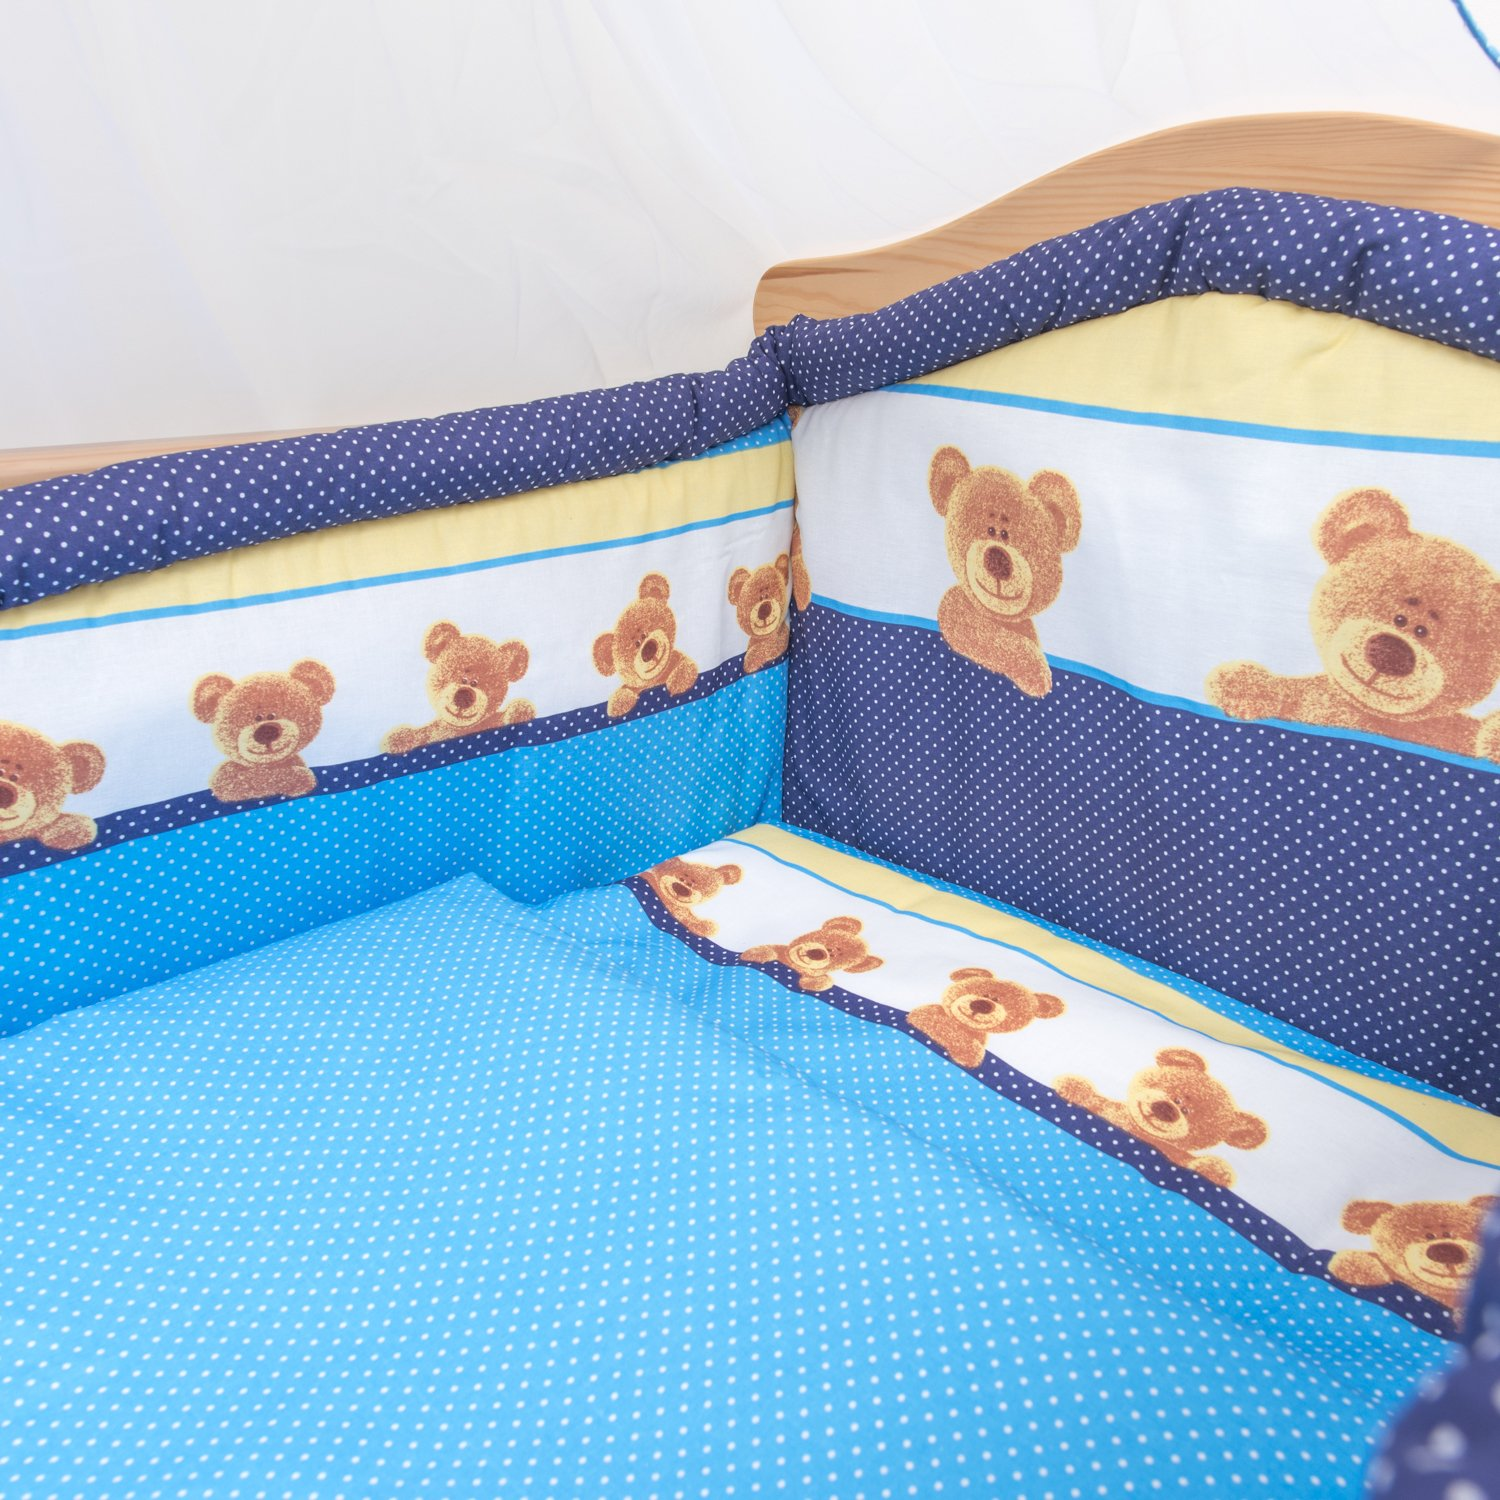 Fits Cot 120x60 cm, Pattern 7 10 Piece Cot Bedding Set with Safety Padded Bumper